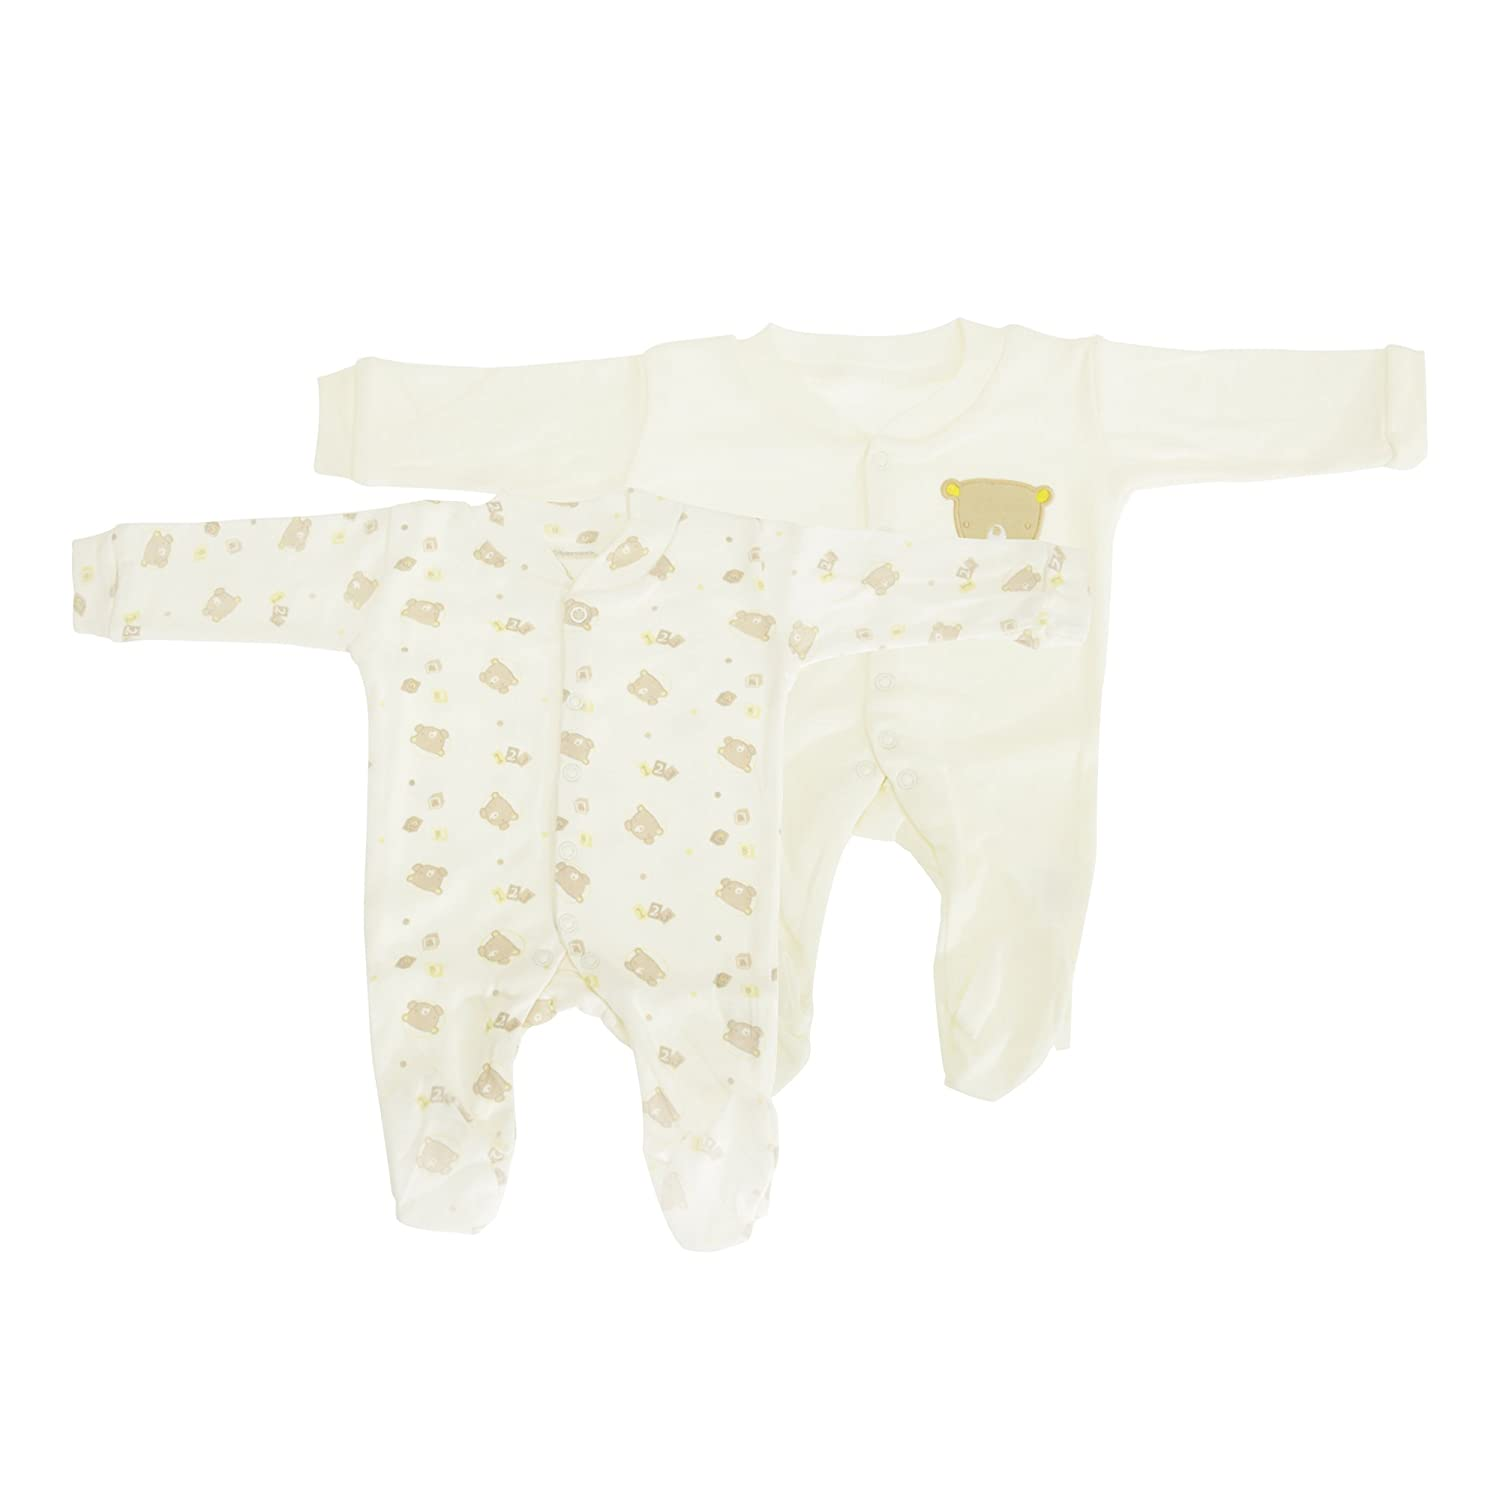 Pale Yellow Newborn Baby Long Sleeve 100/% Cotton Sleepsuits -3 Designs Boys//Girls Options Pack of 2